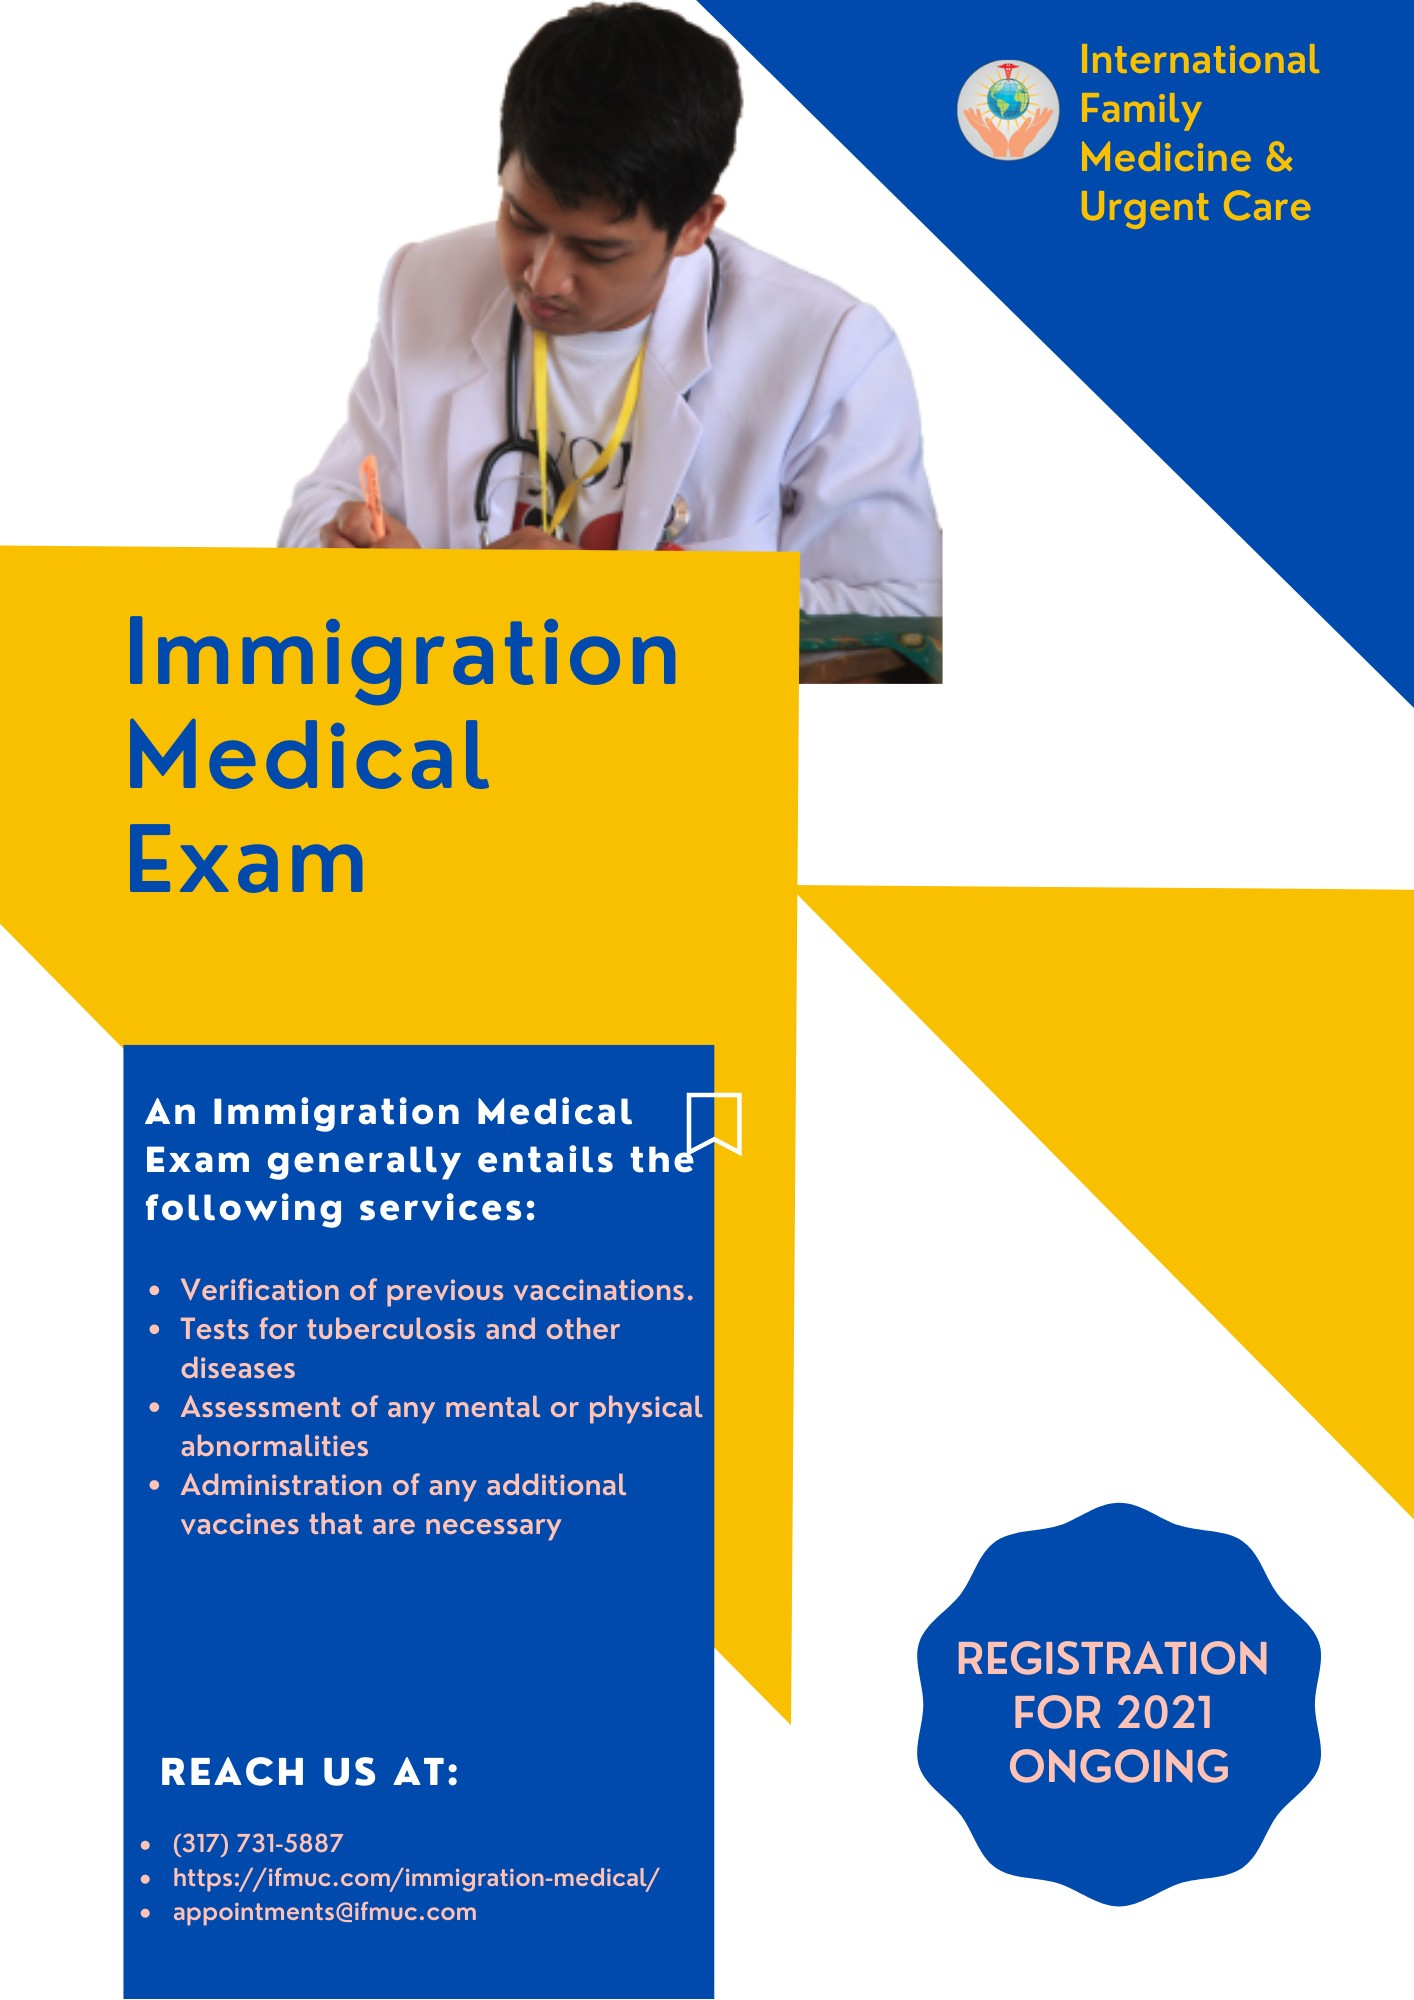 Immigration Medical in Indiana